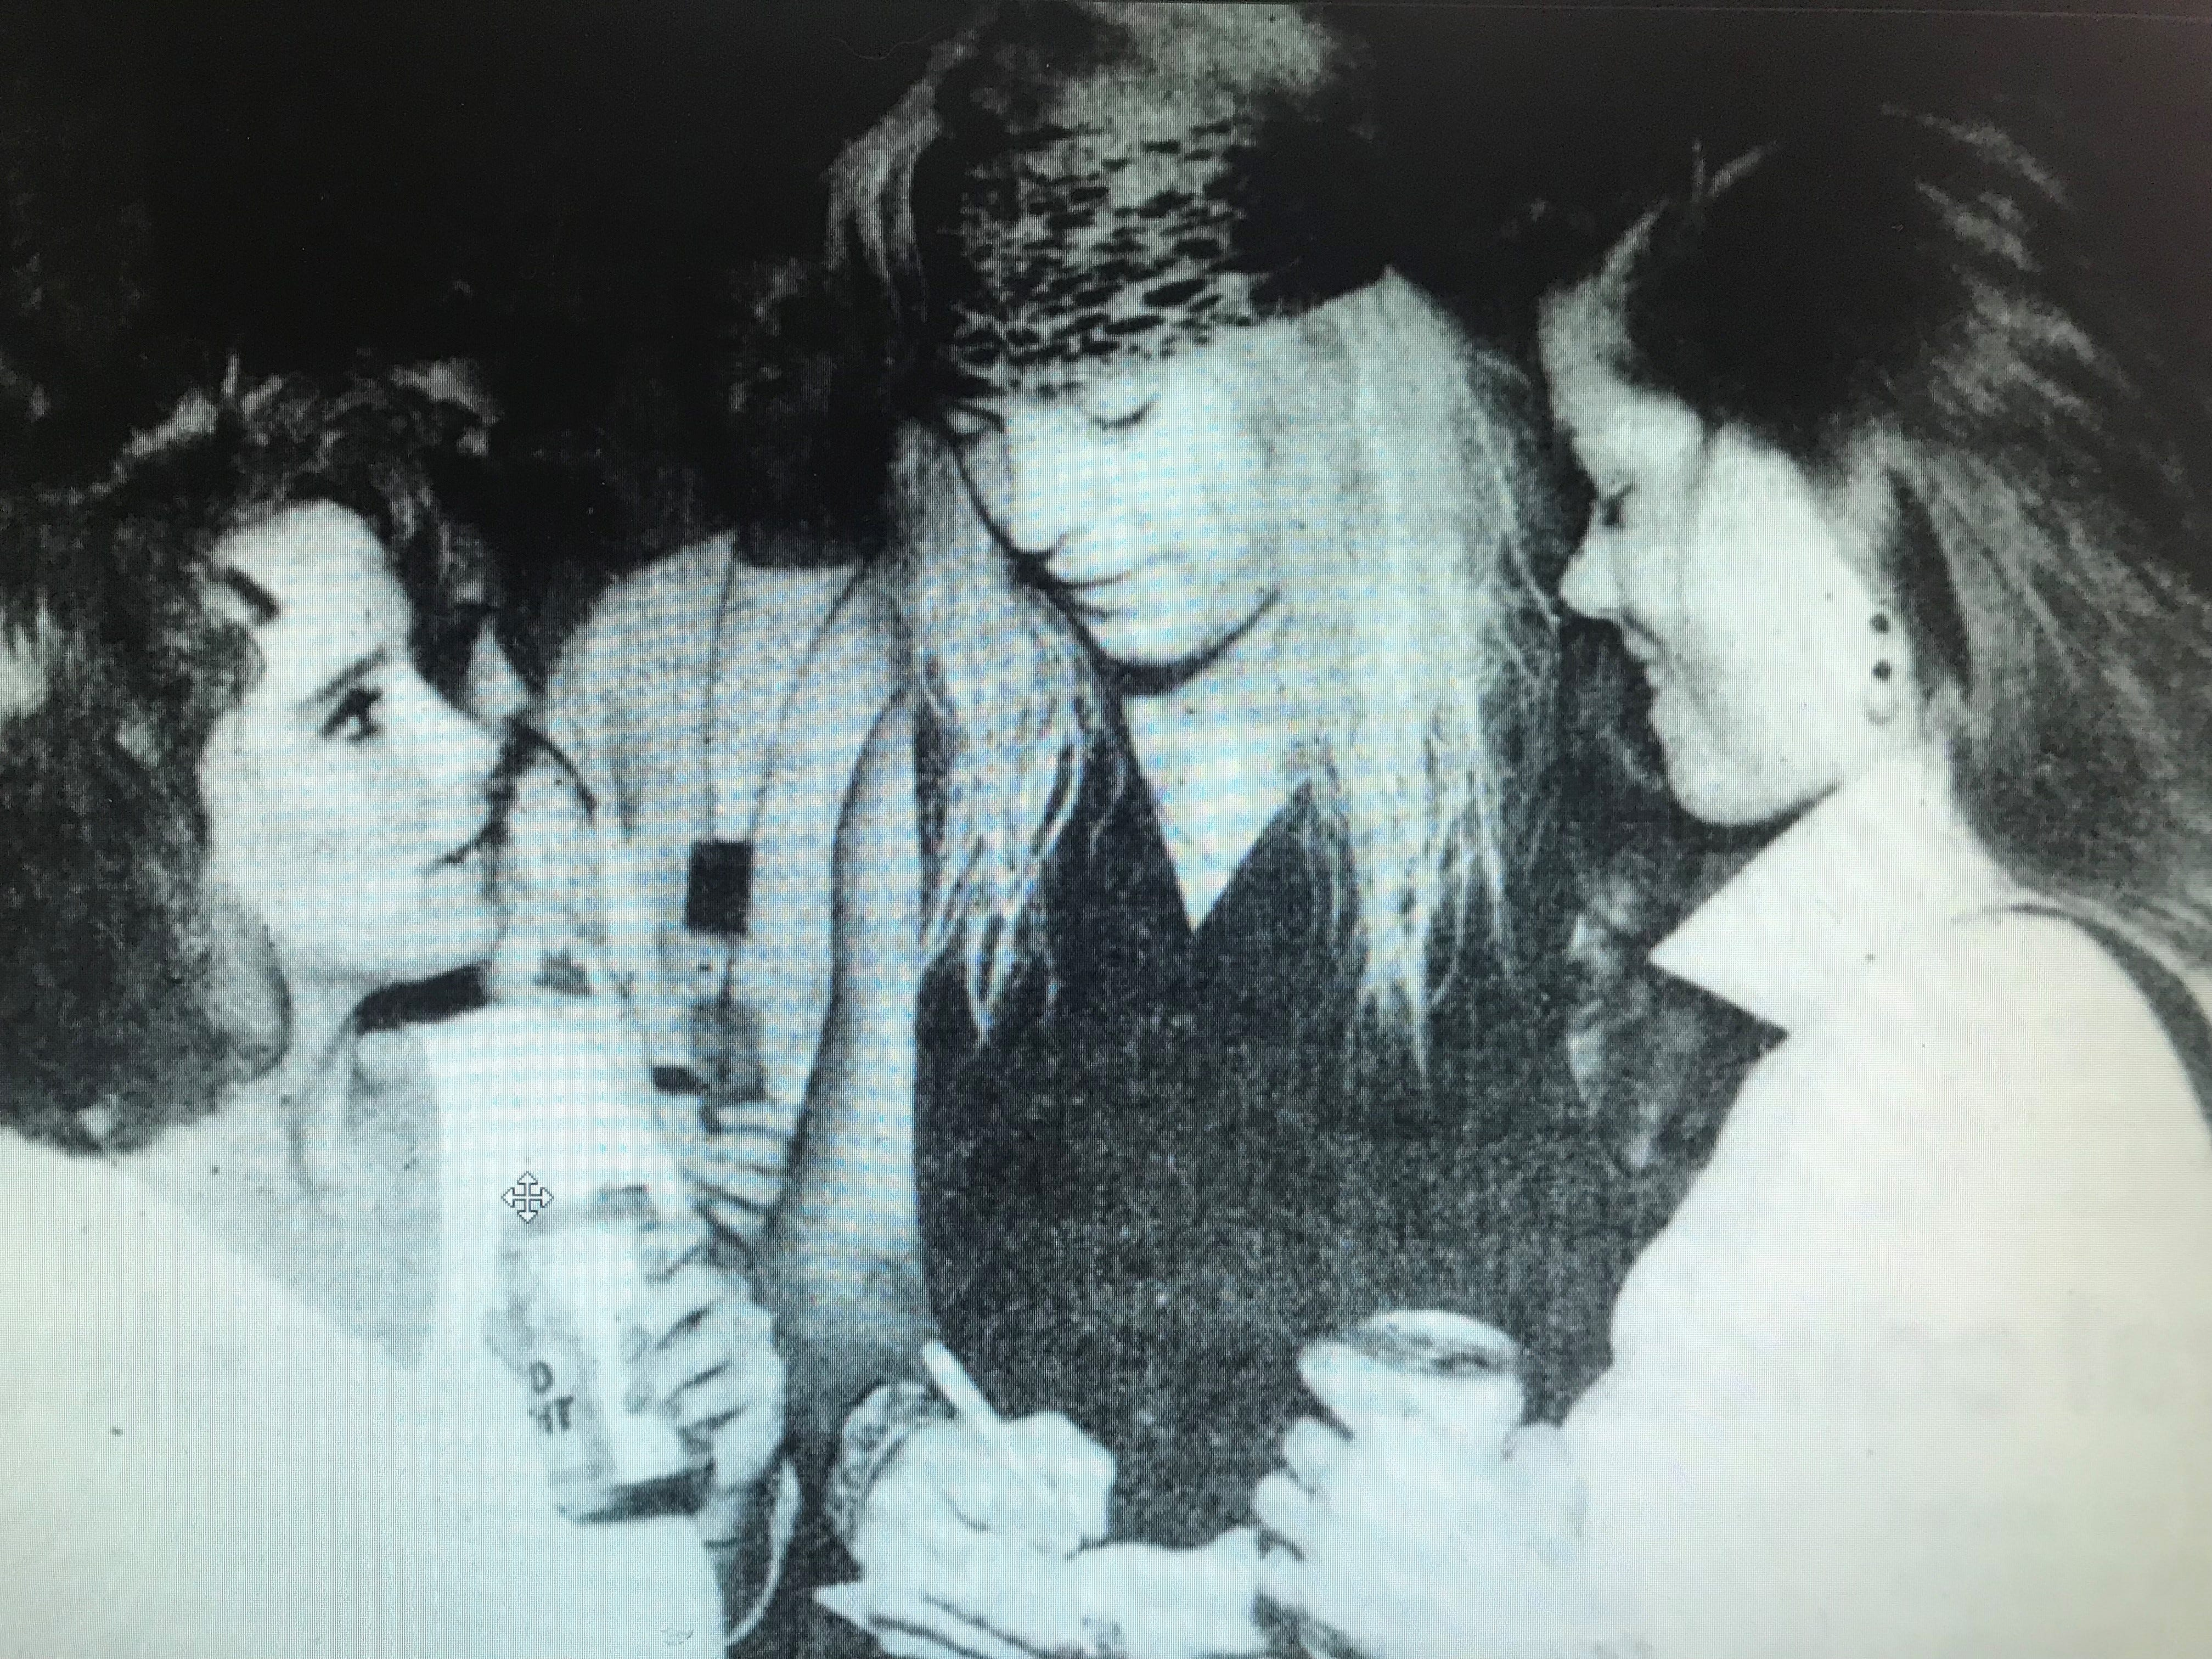 Maggie Furlong and Kim Thayer chat with Bret Michaels during Poison's rehearsal party at Brown County Veterans Memorial Arena in 1993.